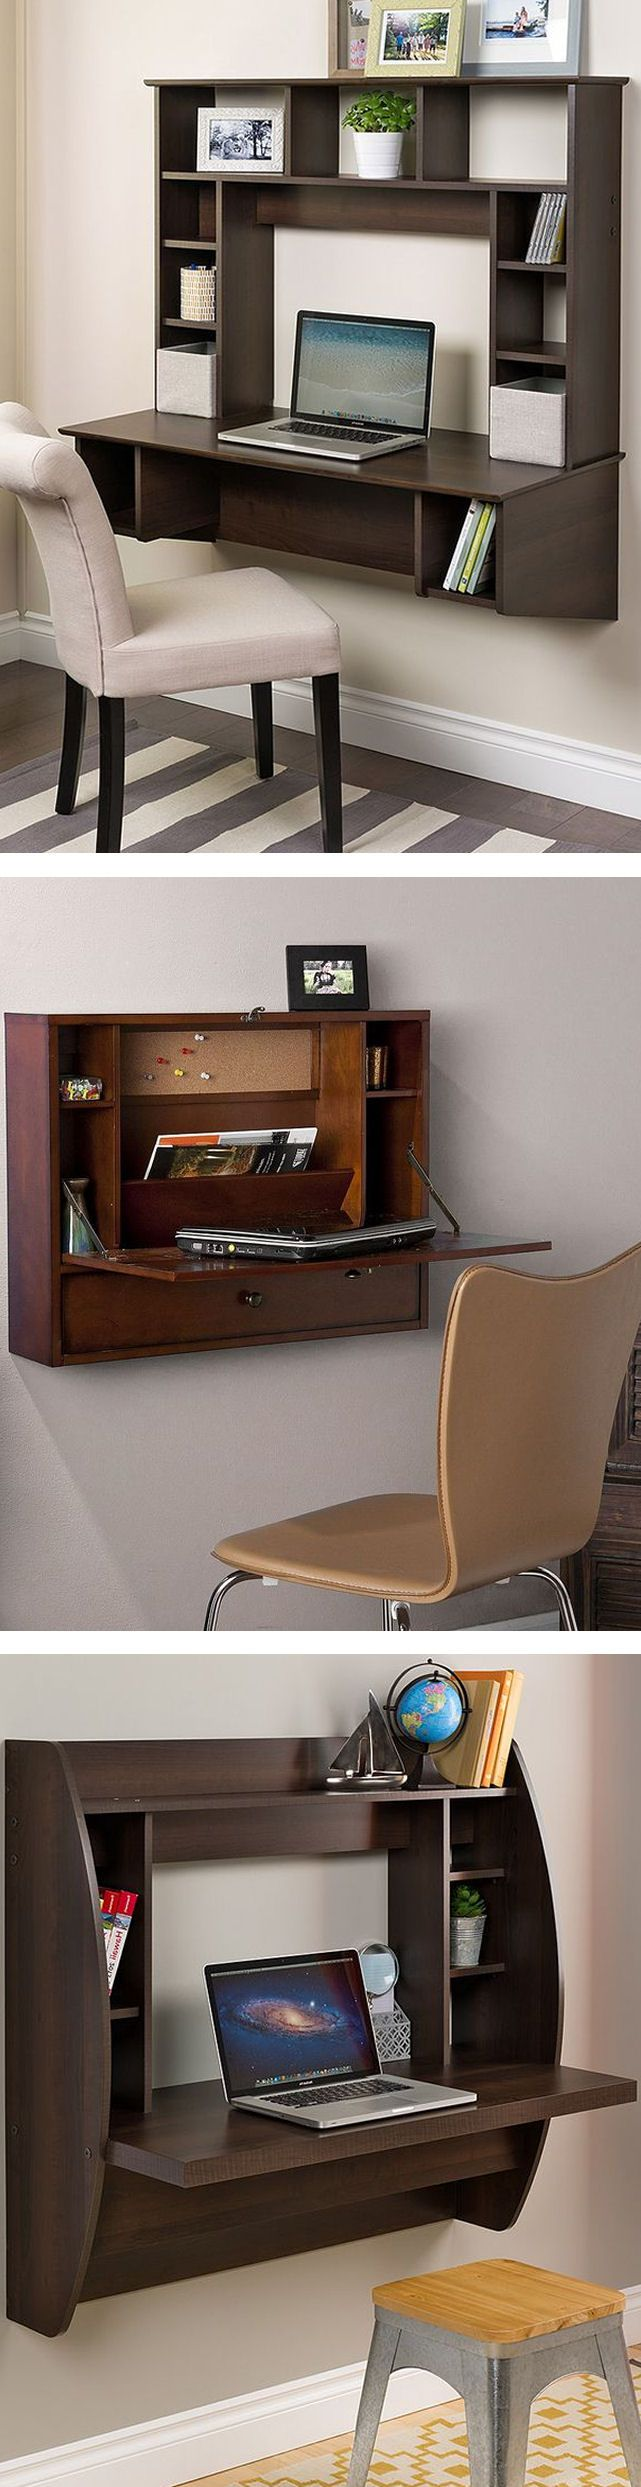 Floating Wall Mount Desk // #office #decor #spacesaving | » TIny ...